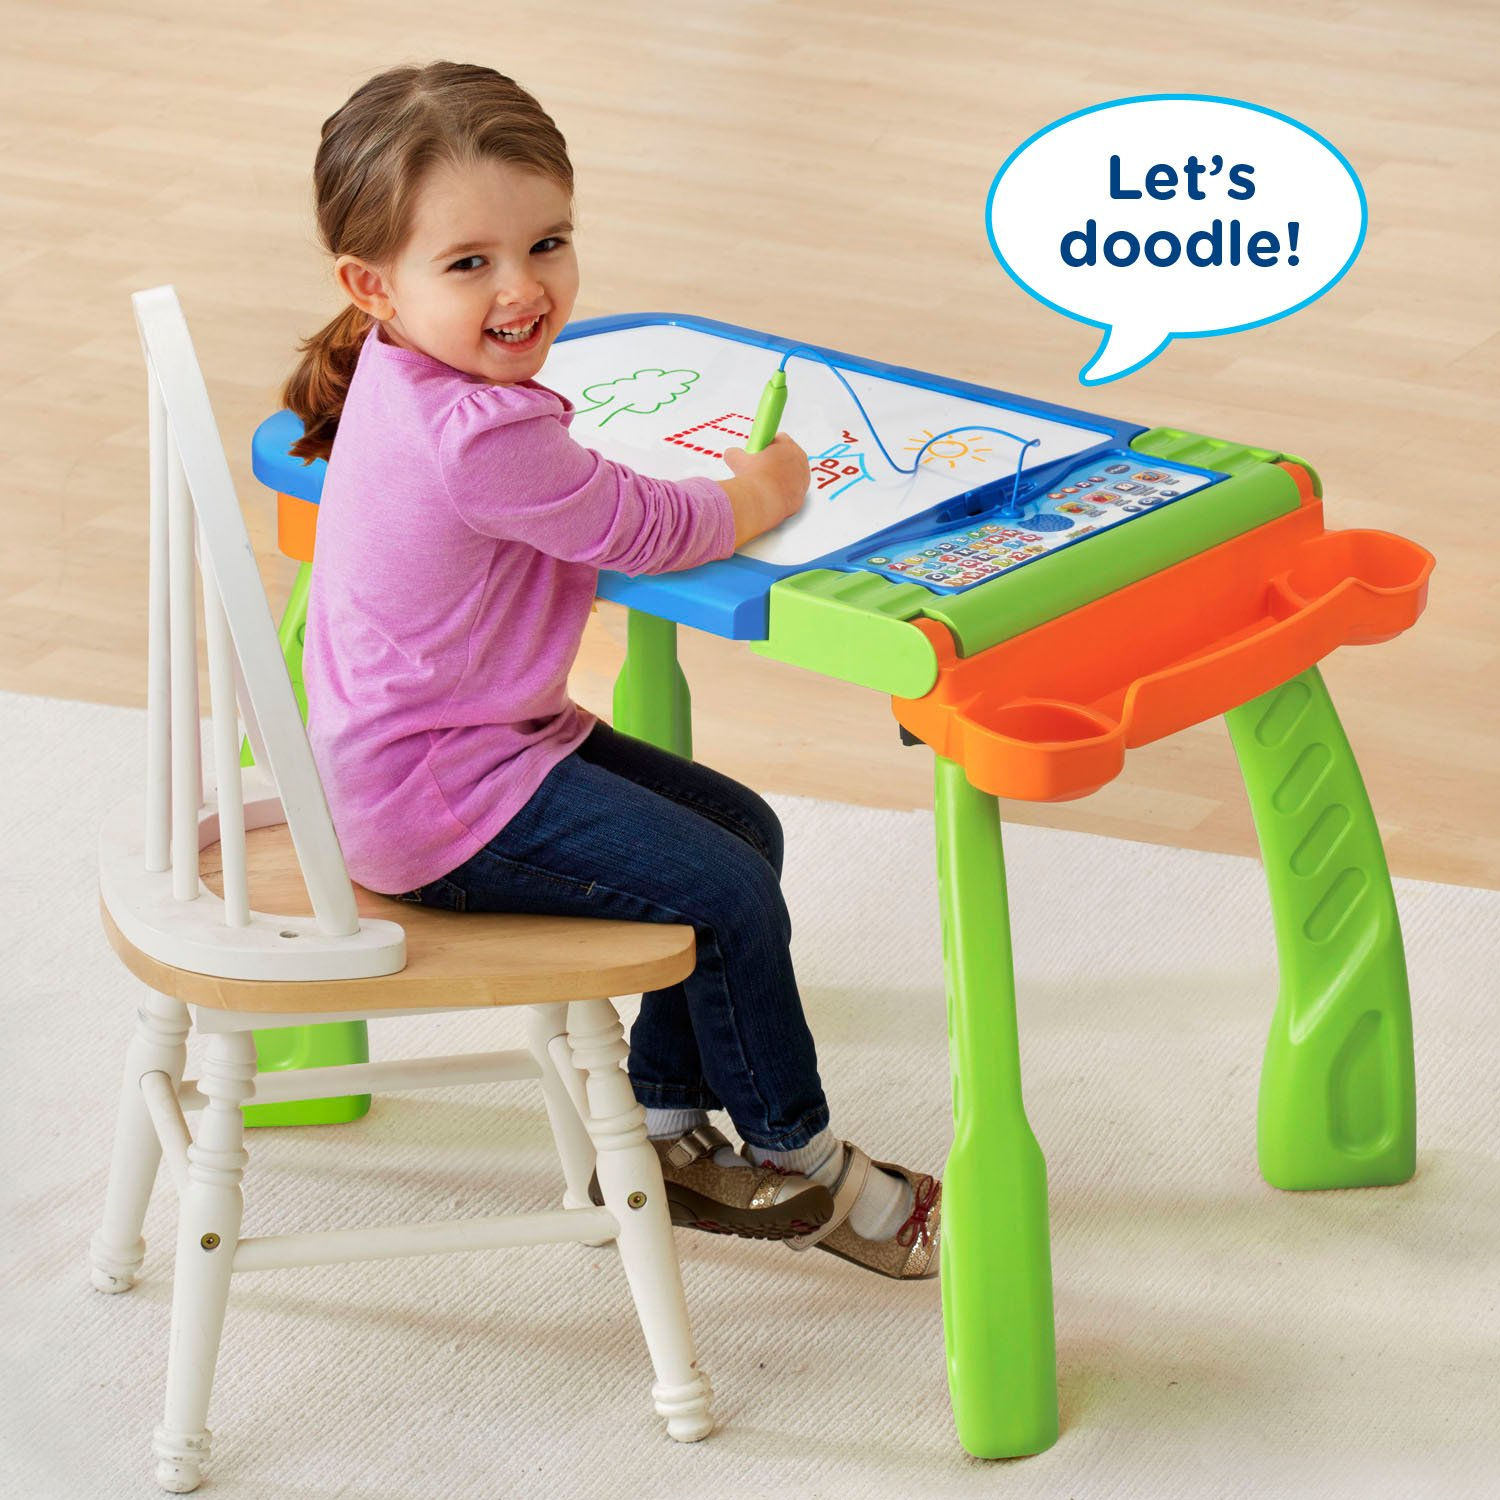 VTech DigiArt Creative Easel (Frustration Free Packaging) by VTech (Image #4)